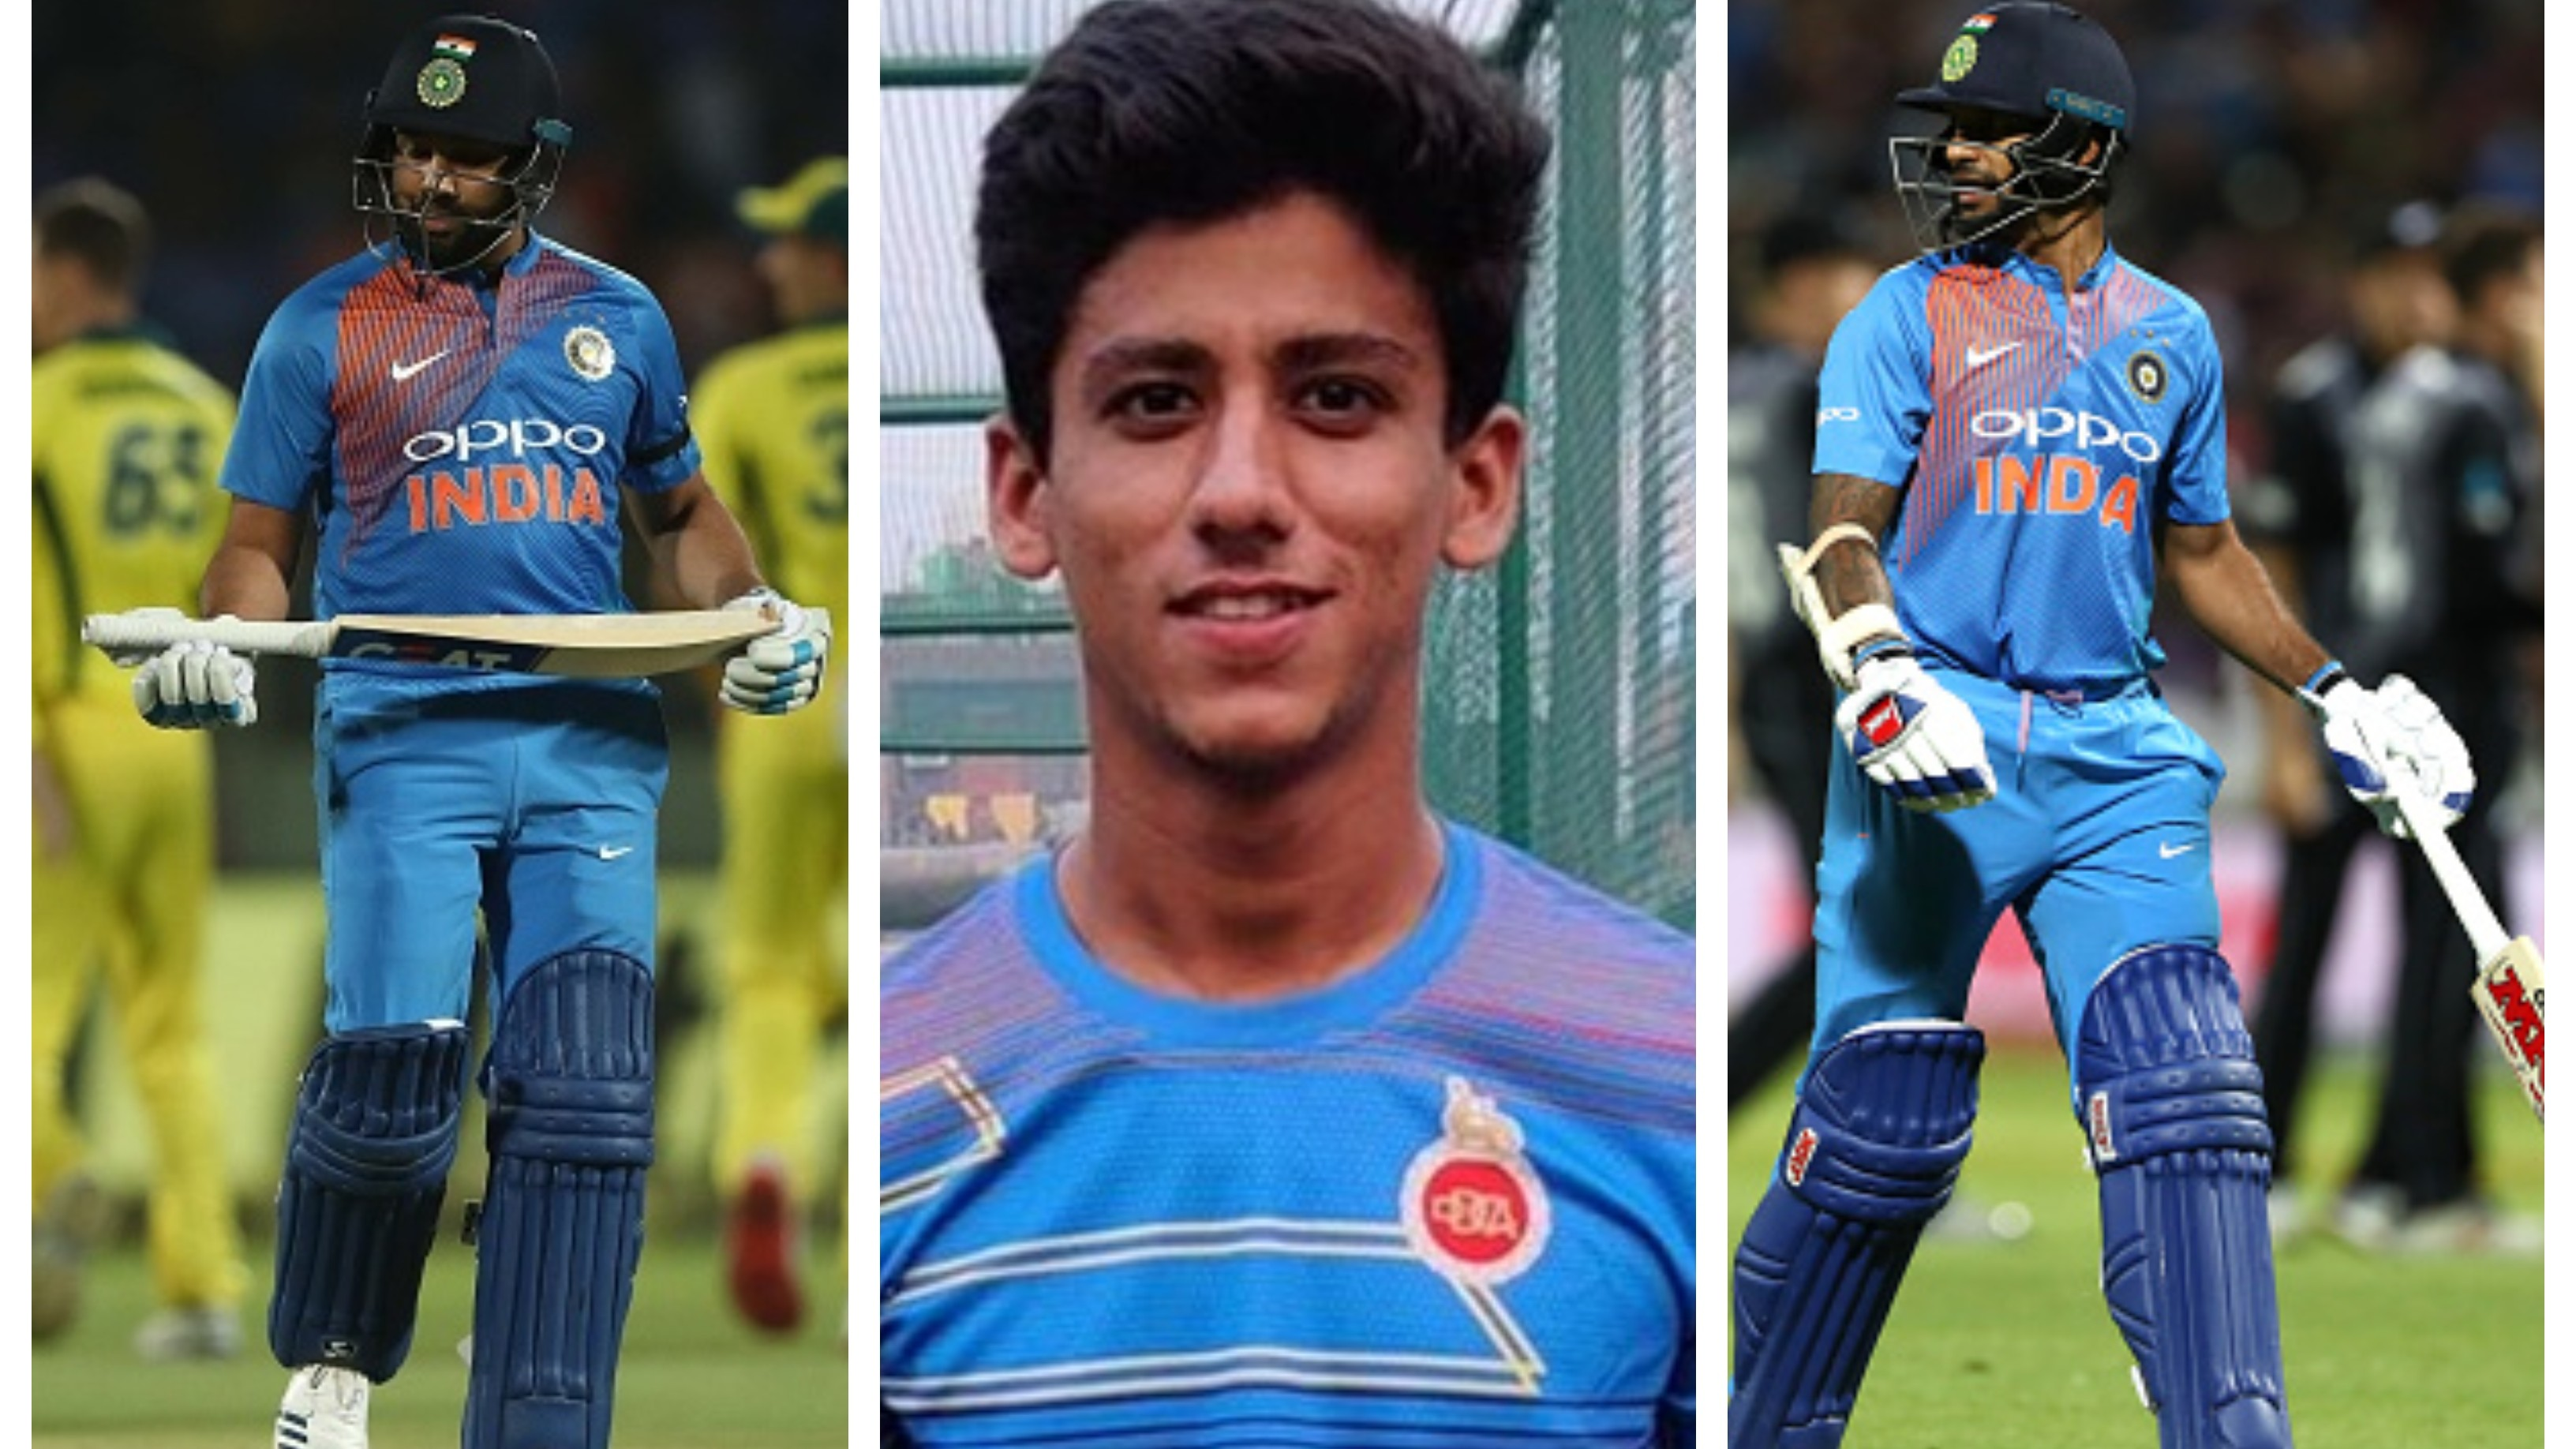 IND v BAN 2019: 19-year-old Keshav Dabas gets better of Rohit, Dhawan at the nets ahead of Delhi T20I